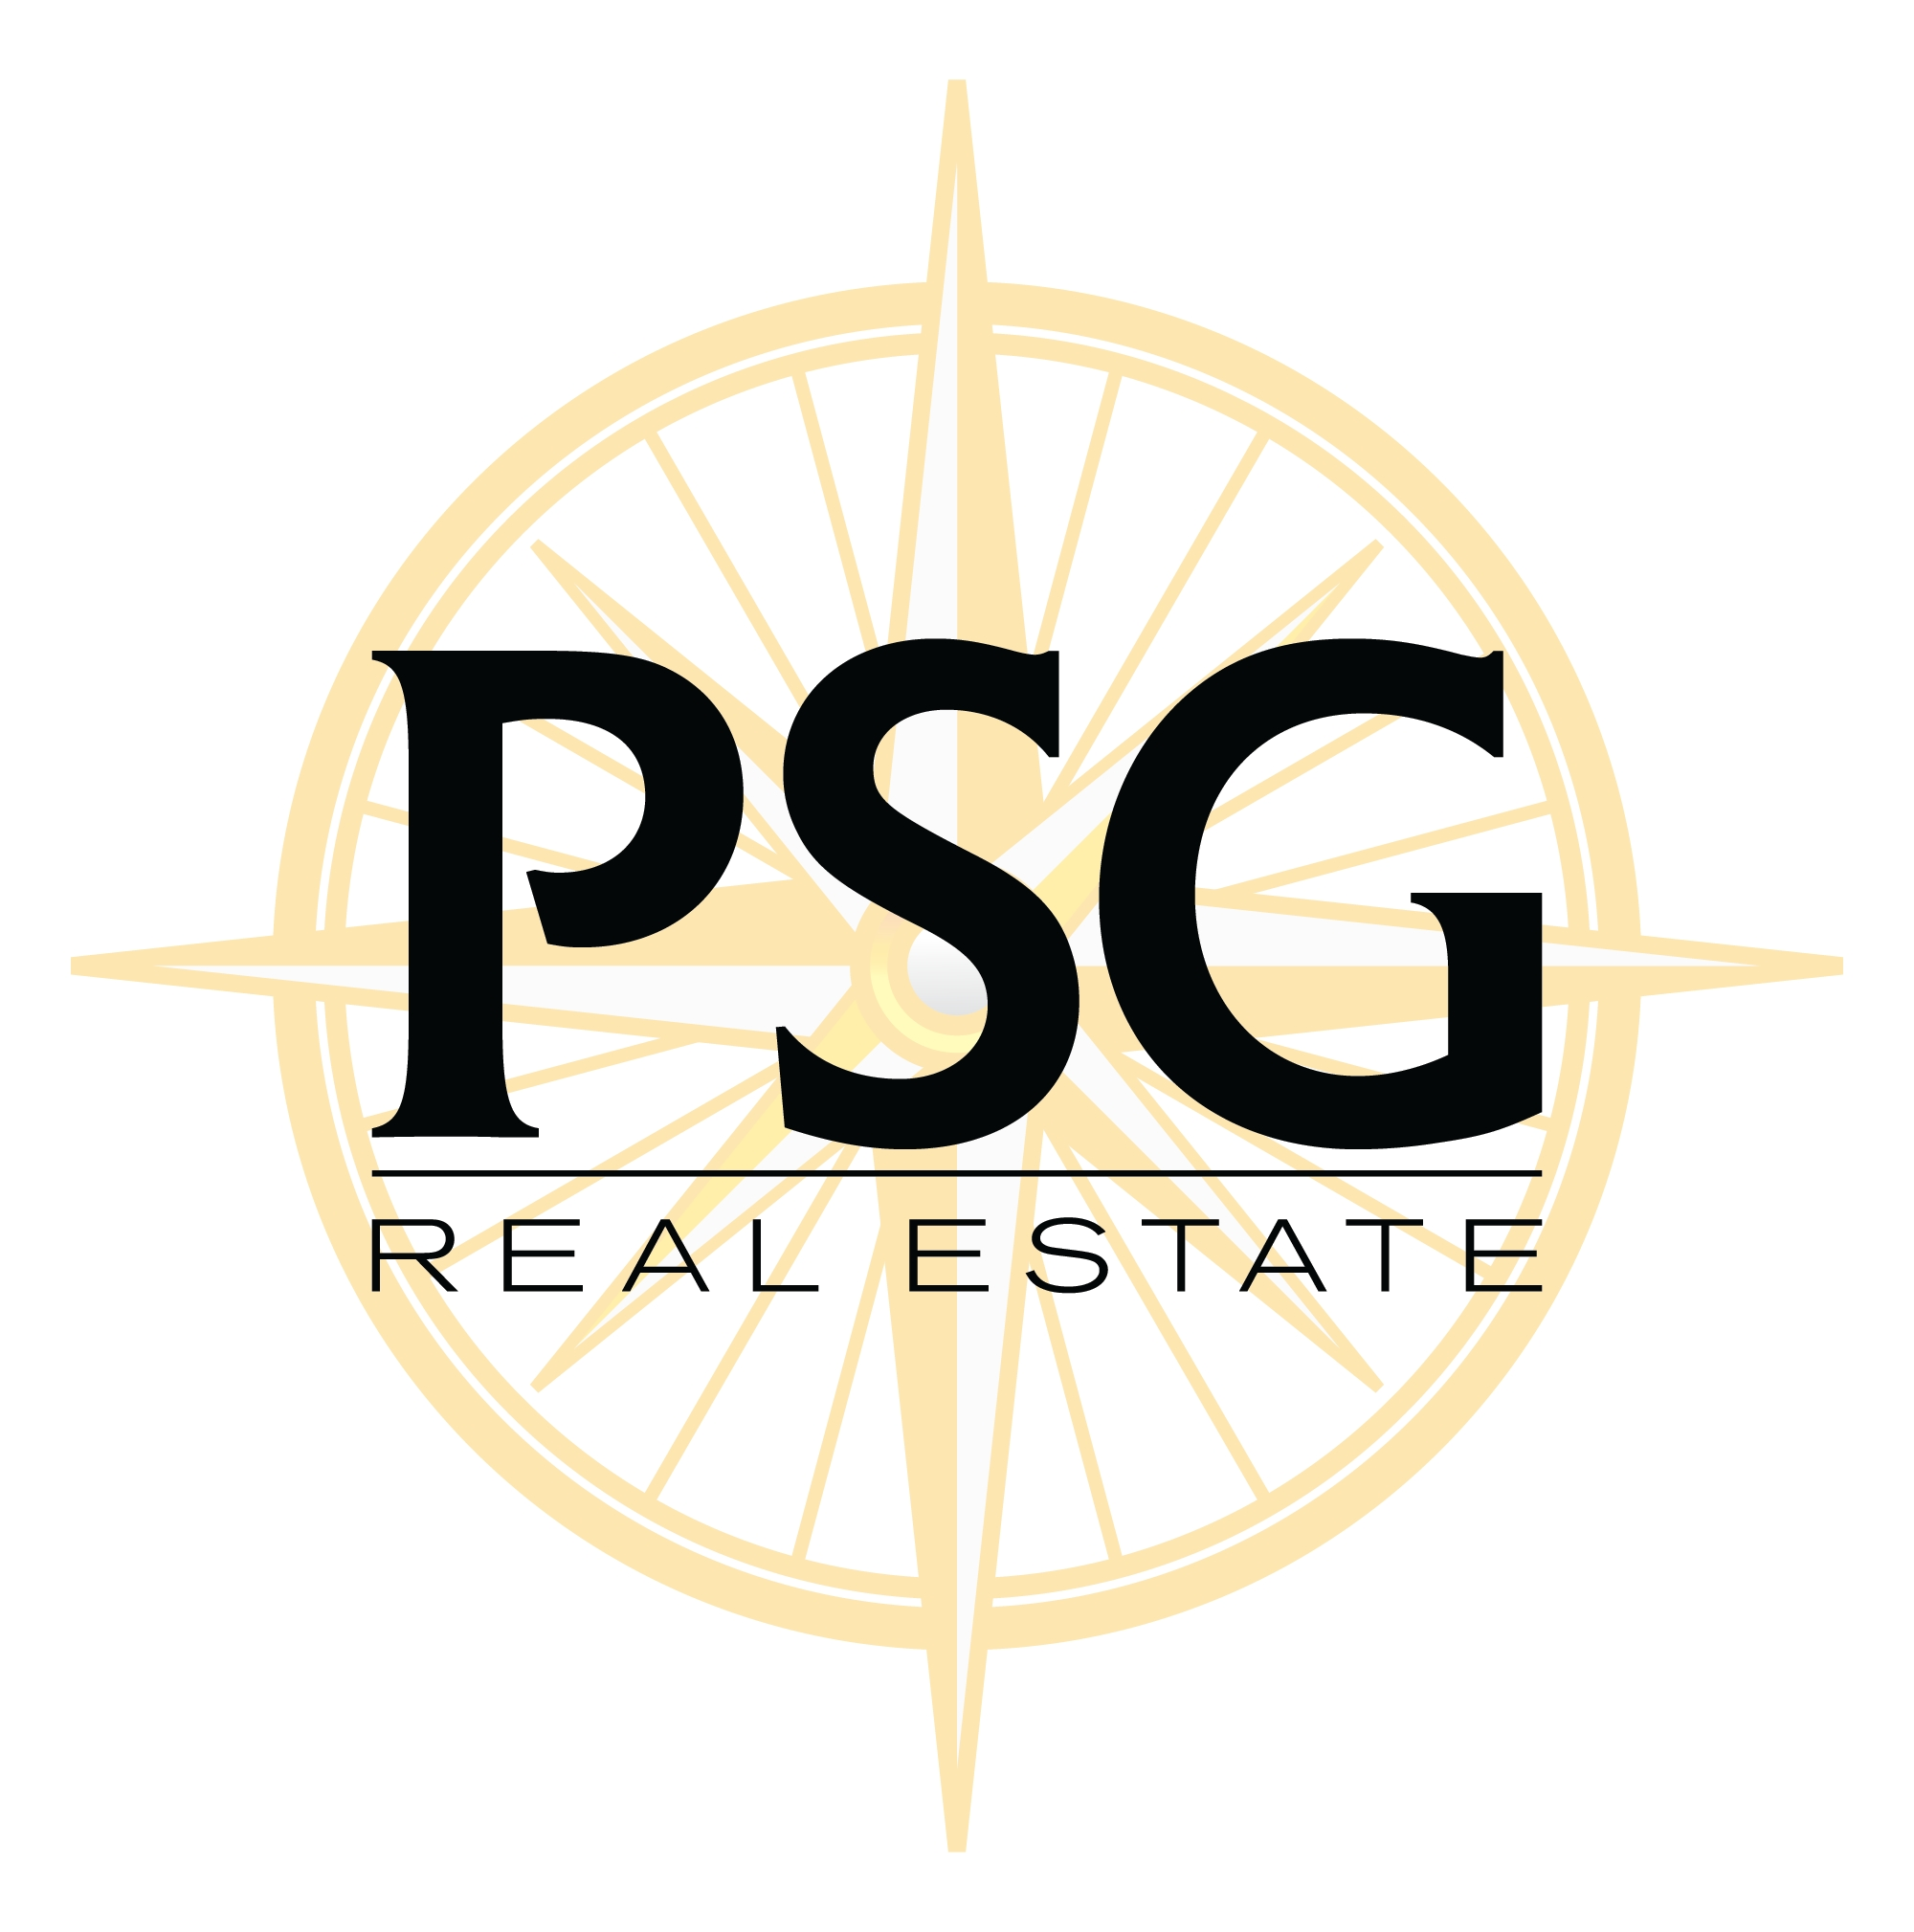 Christopher Maxner - Point South Real Estate Logo